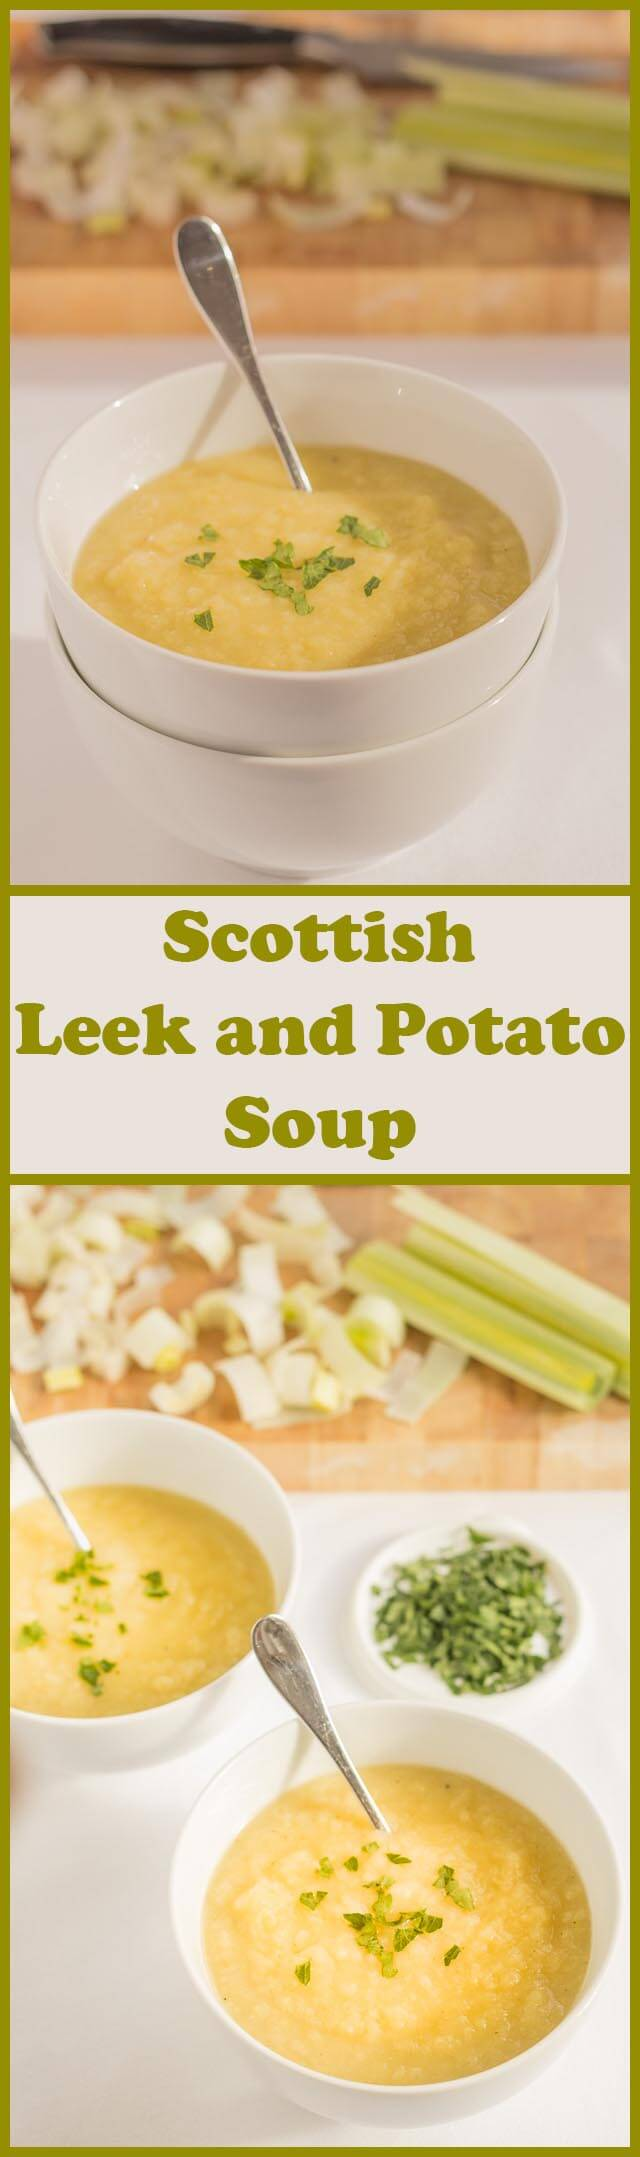 A simple healthier Scottish leek and potato soup. Still as deliciously creamy and smooth tasting as the original but as it's not made with butter or cream, it's so much more healthier! Completely suitable for lactose intolerant and vegetarians too!